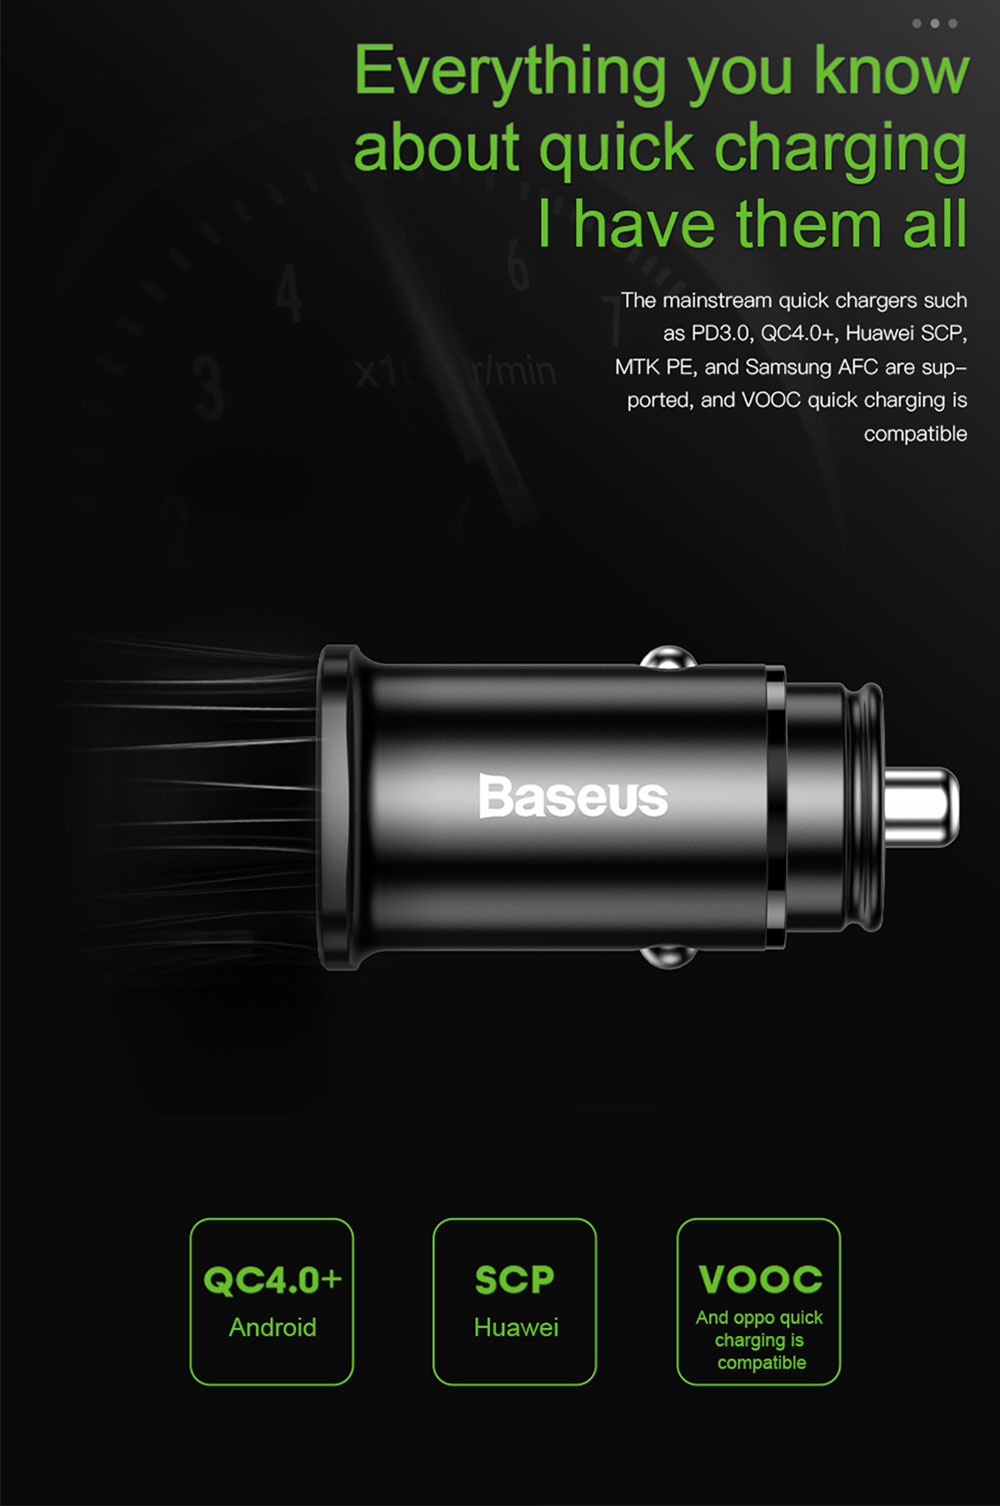 Baseus CCALL - AS01 / CCALL - AS0S 30W USB Quick Charge QC 4.0 Car Charger - Silver USB+type C